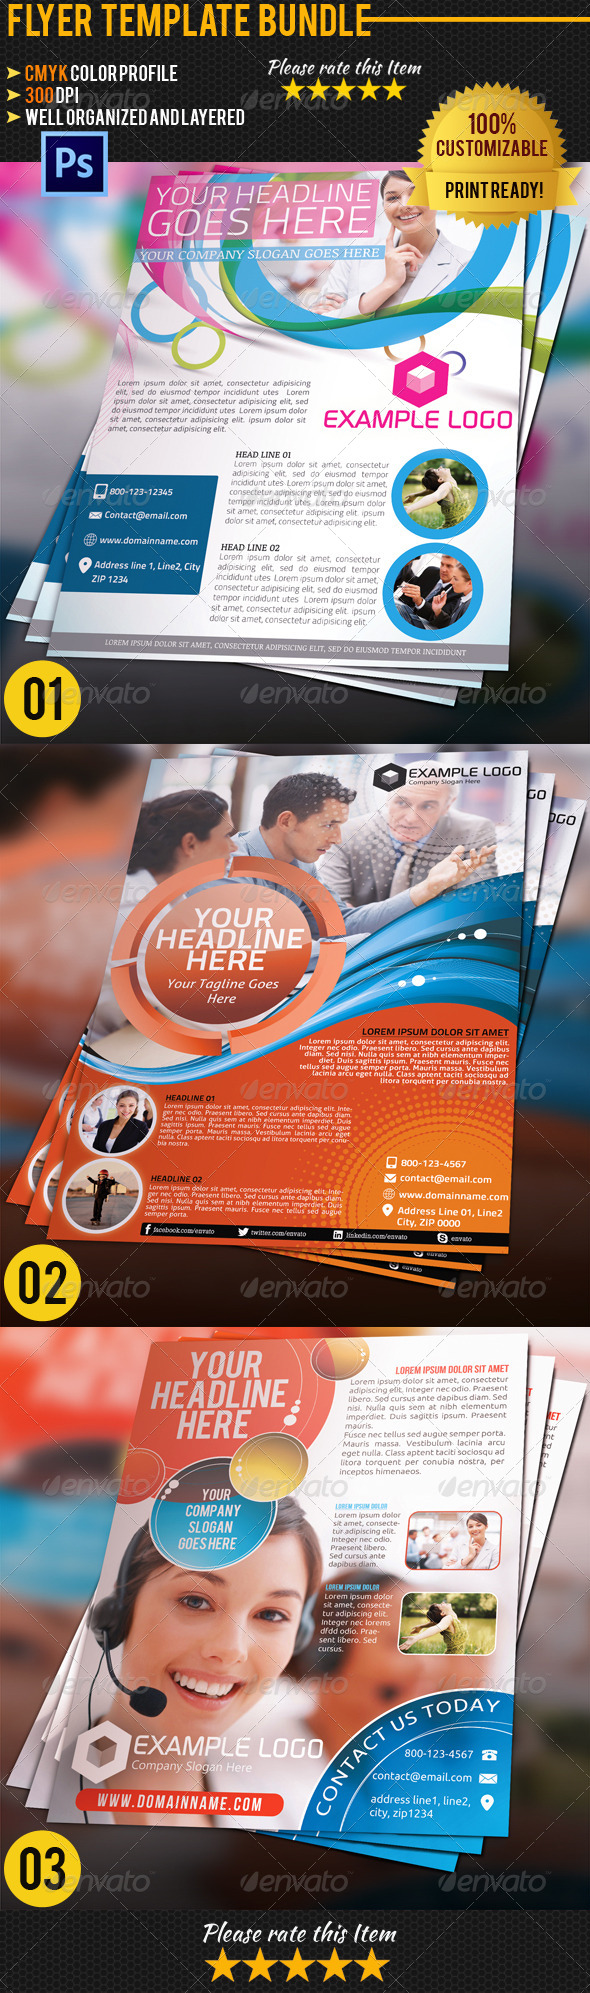 GraphicRiver Corporate Business Flyer Bundle 01 4513304